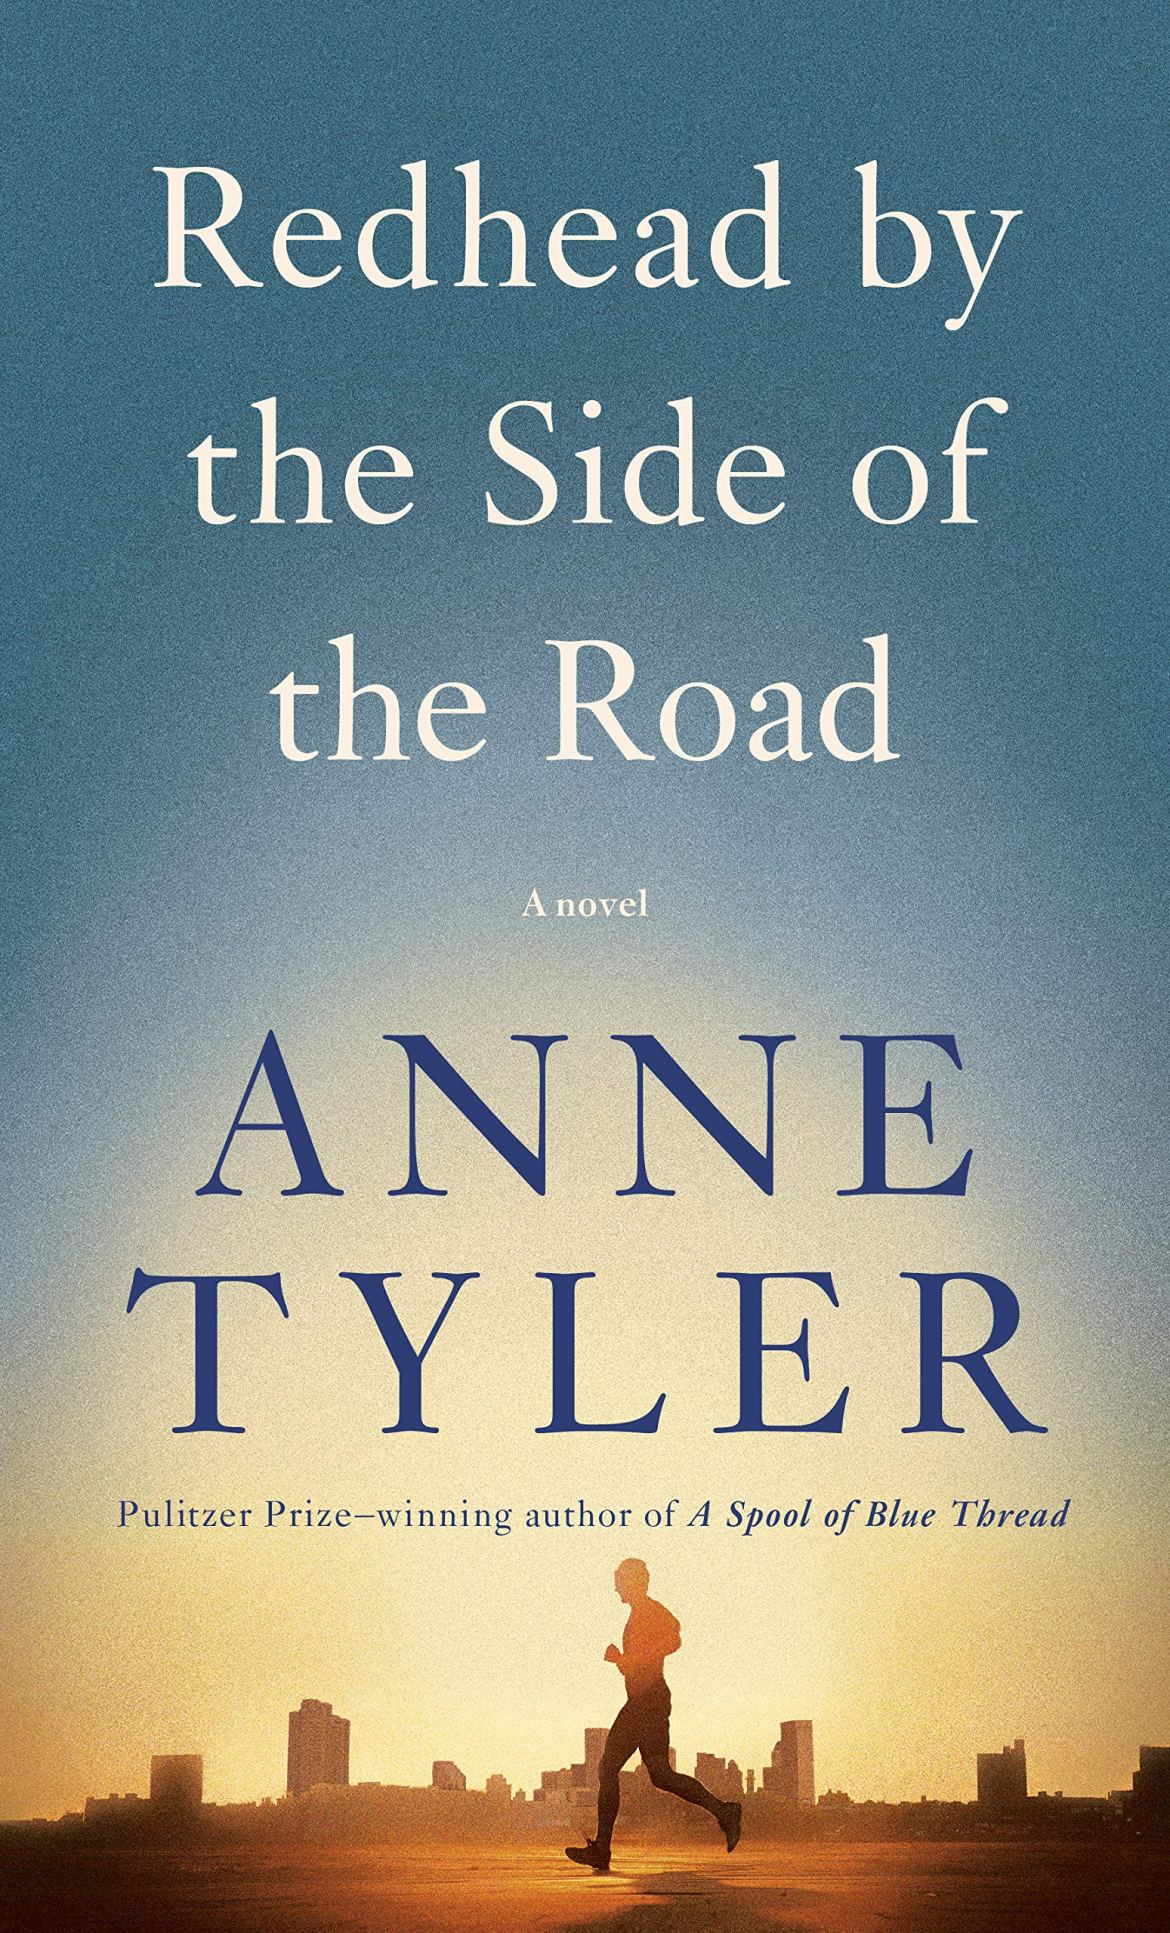 Amazon.com: Redhead by the Side of the Road: A novel ...